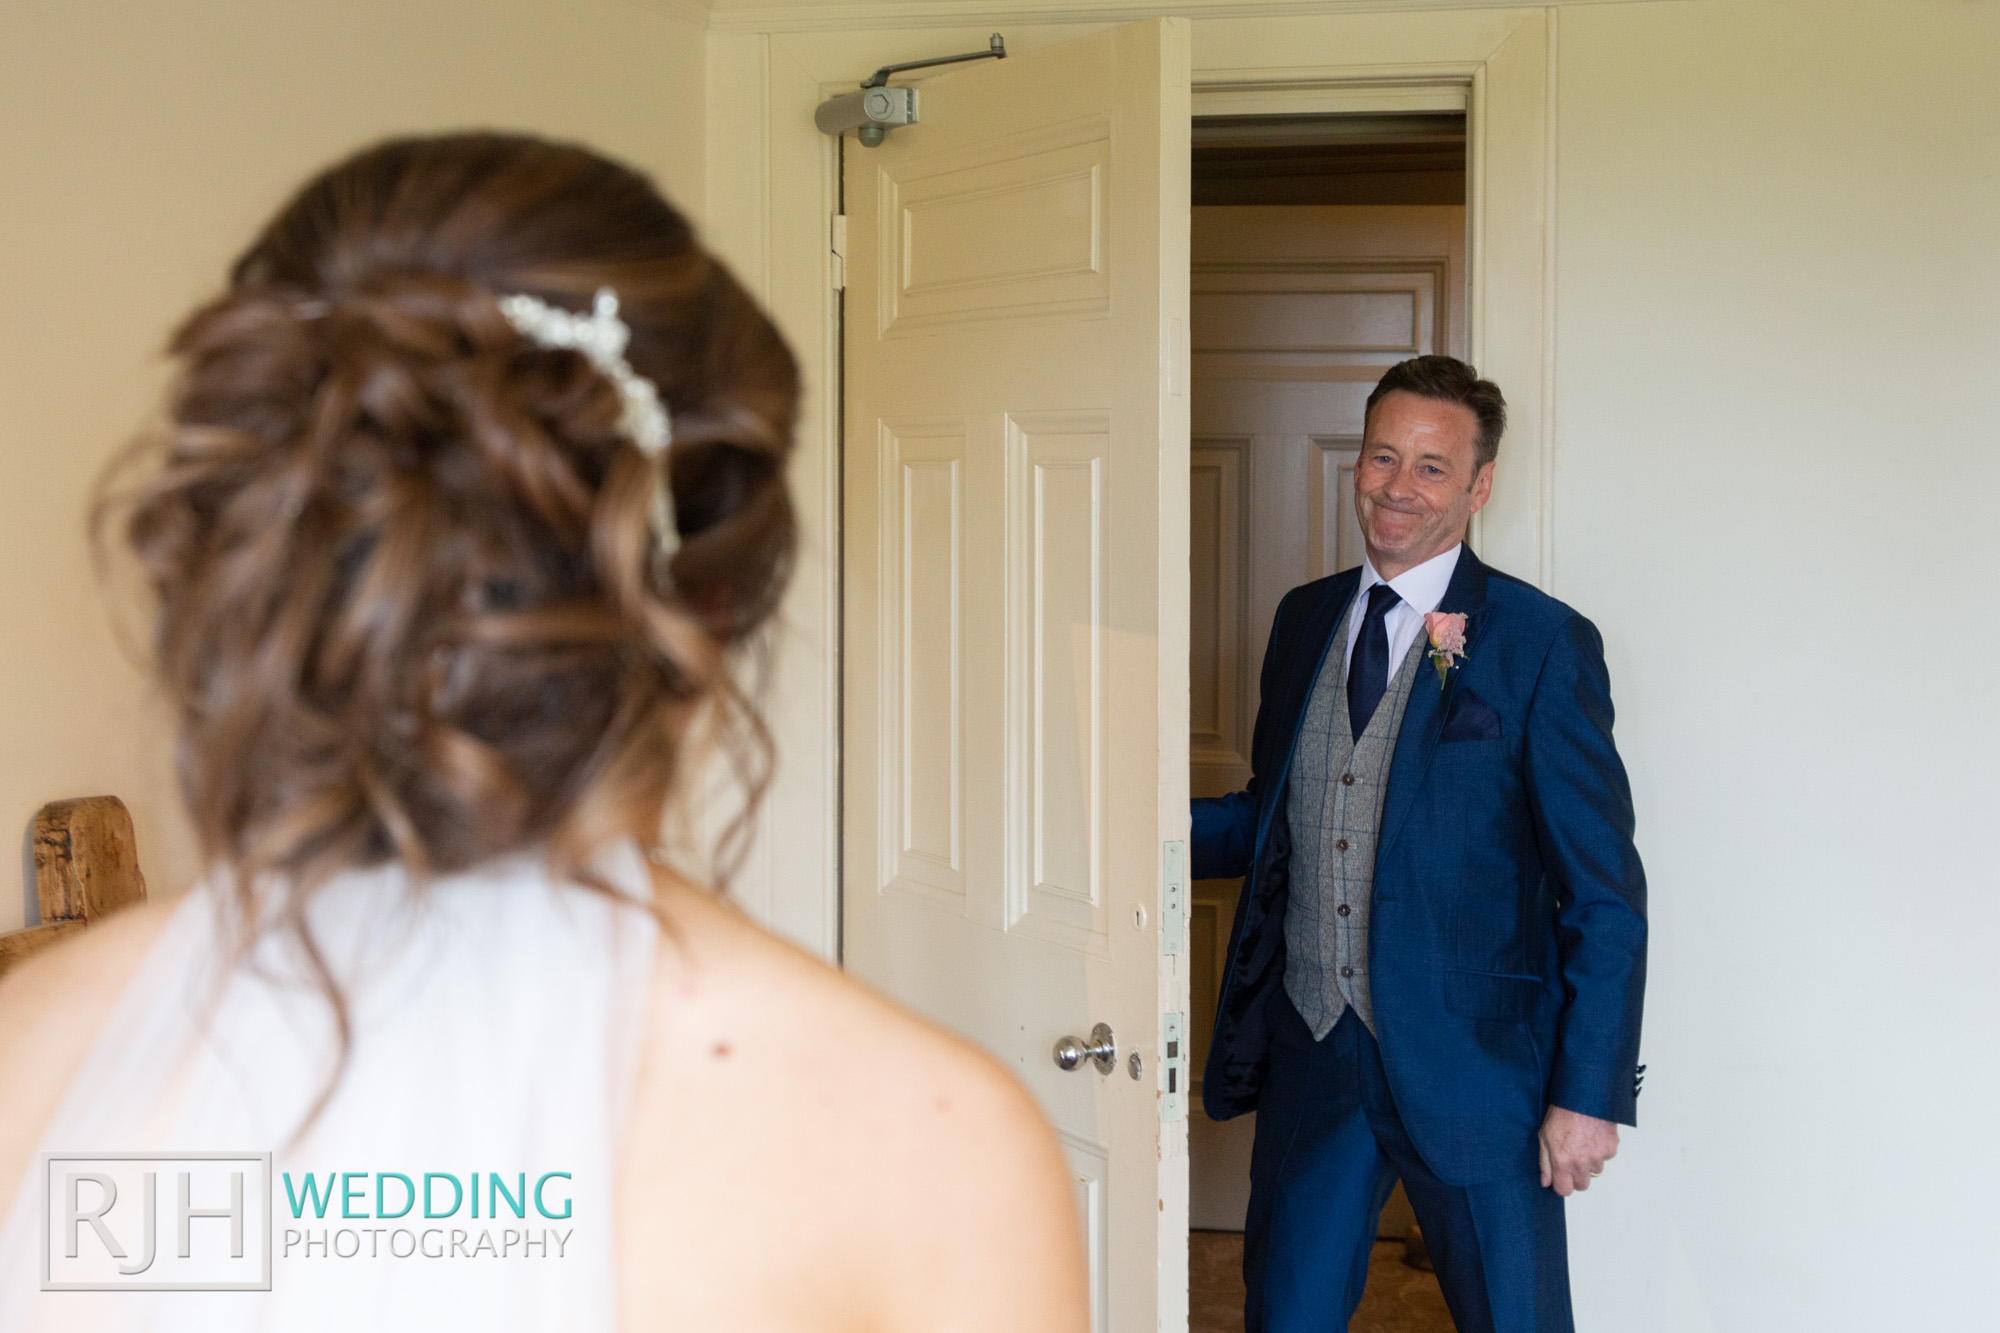 Whirlowbrook Hall Wedding Photography_Jack & Lydia_025_3C2A3167.jpg